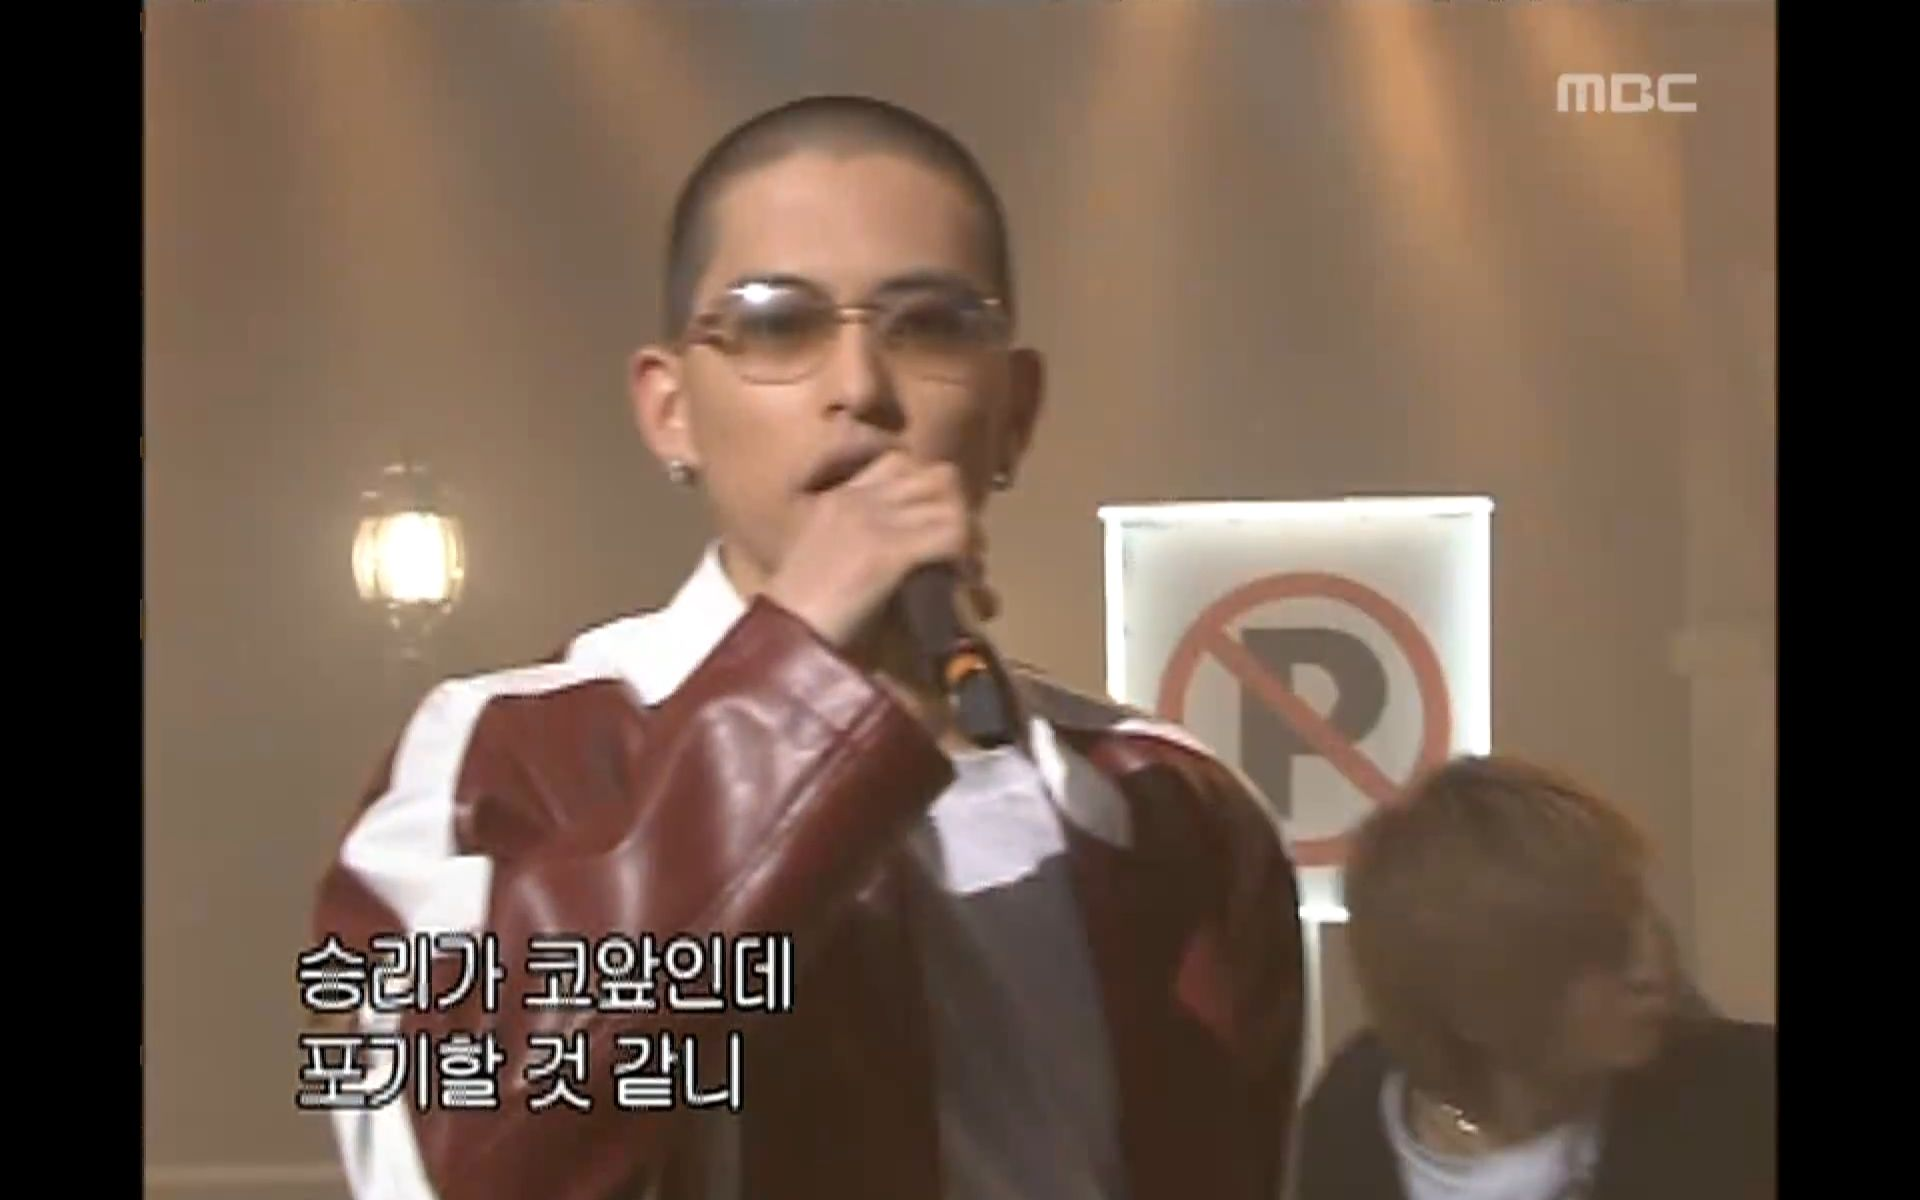 N.R.G - Hit Song - Music Camp 超清现场 - 20030301